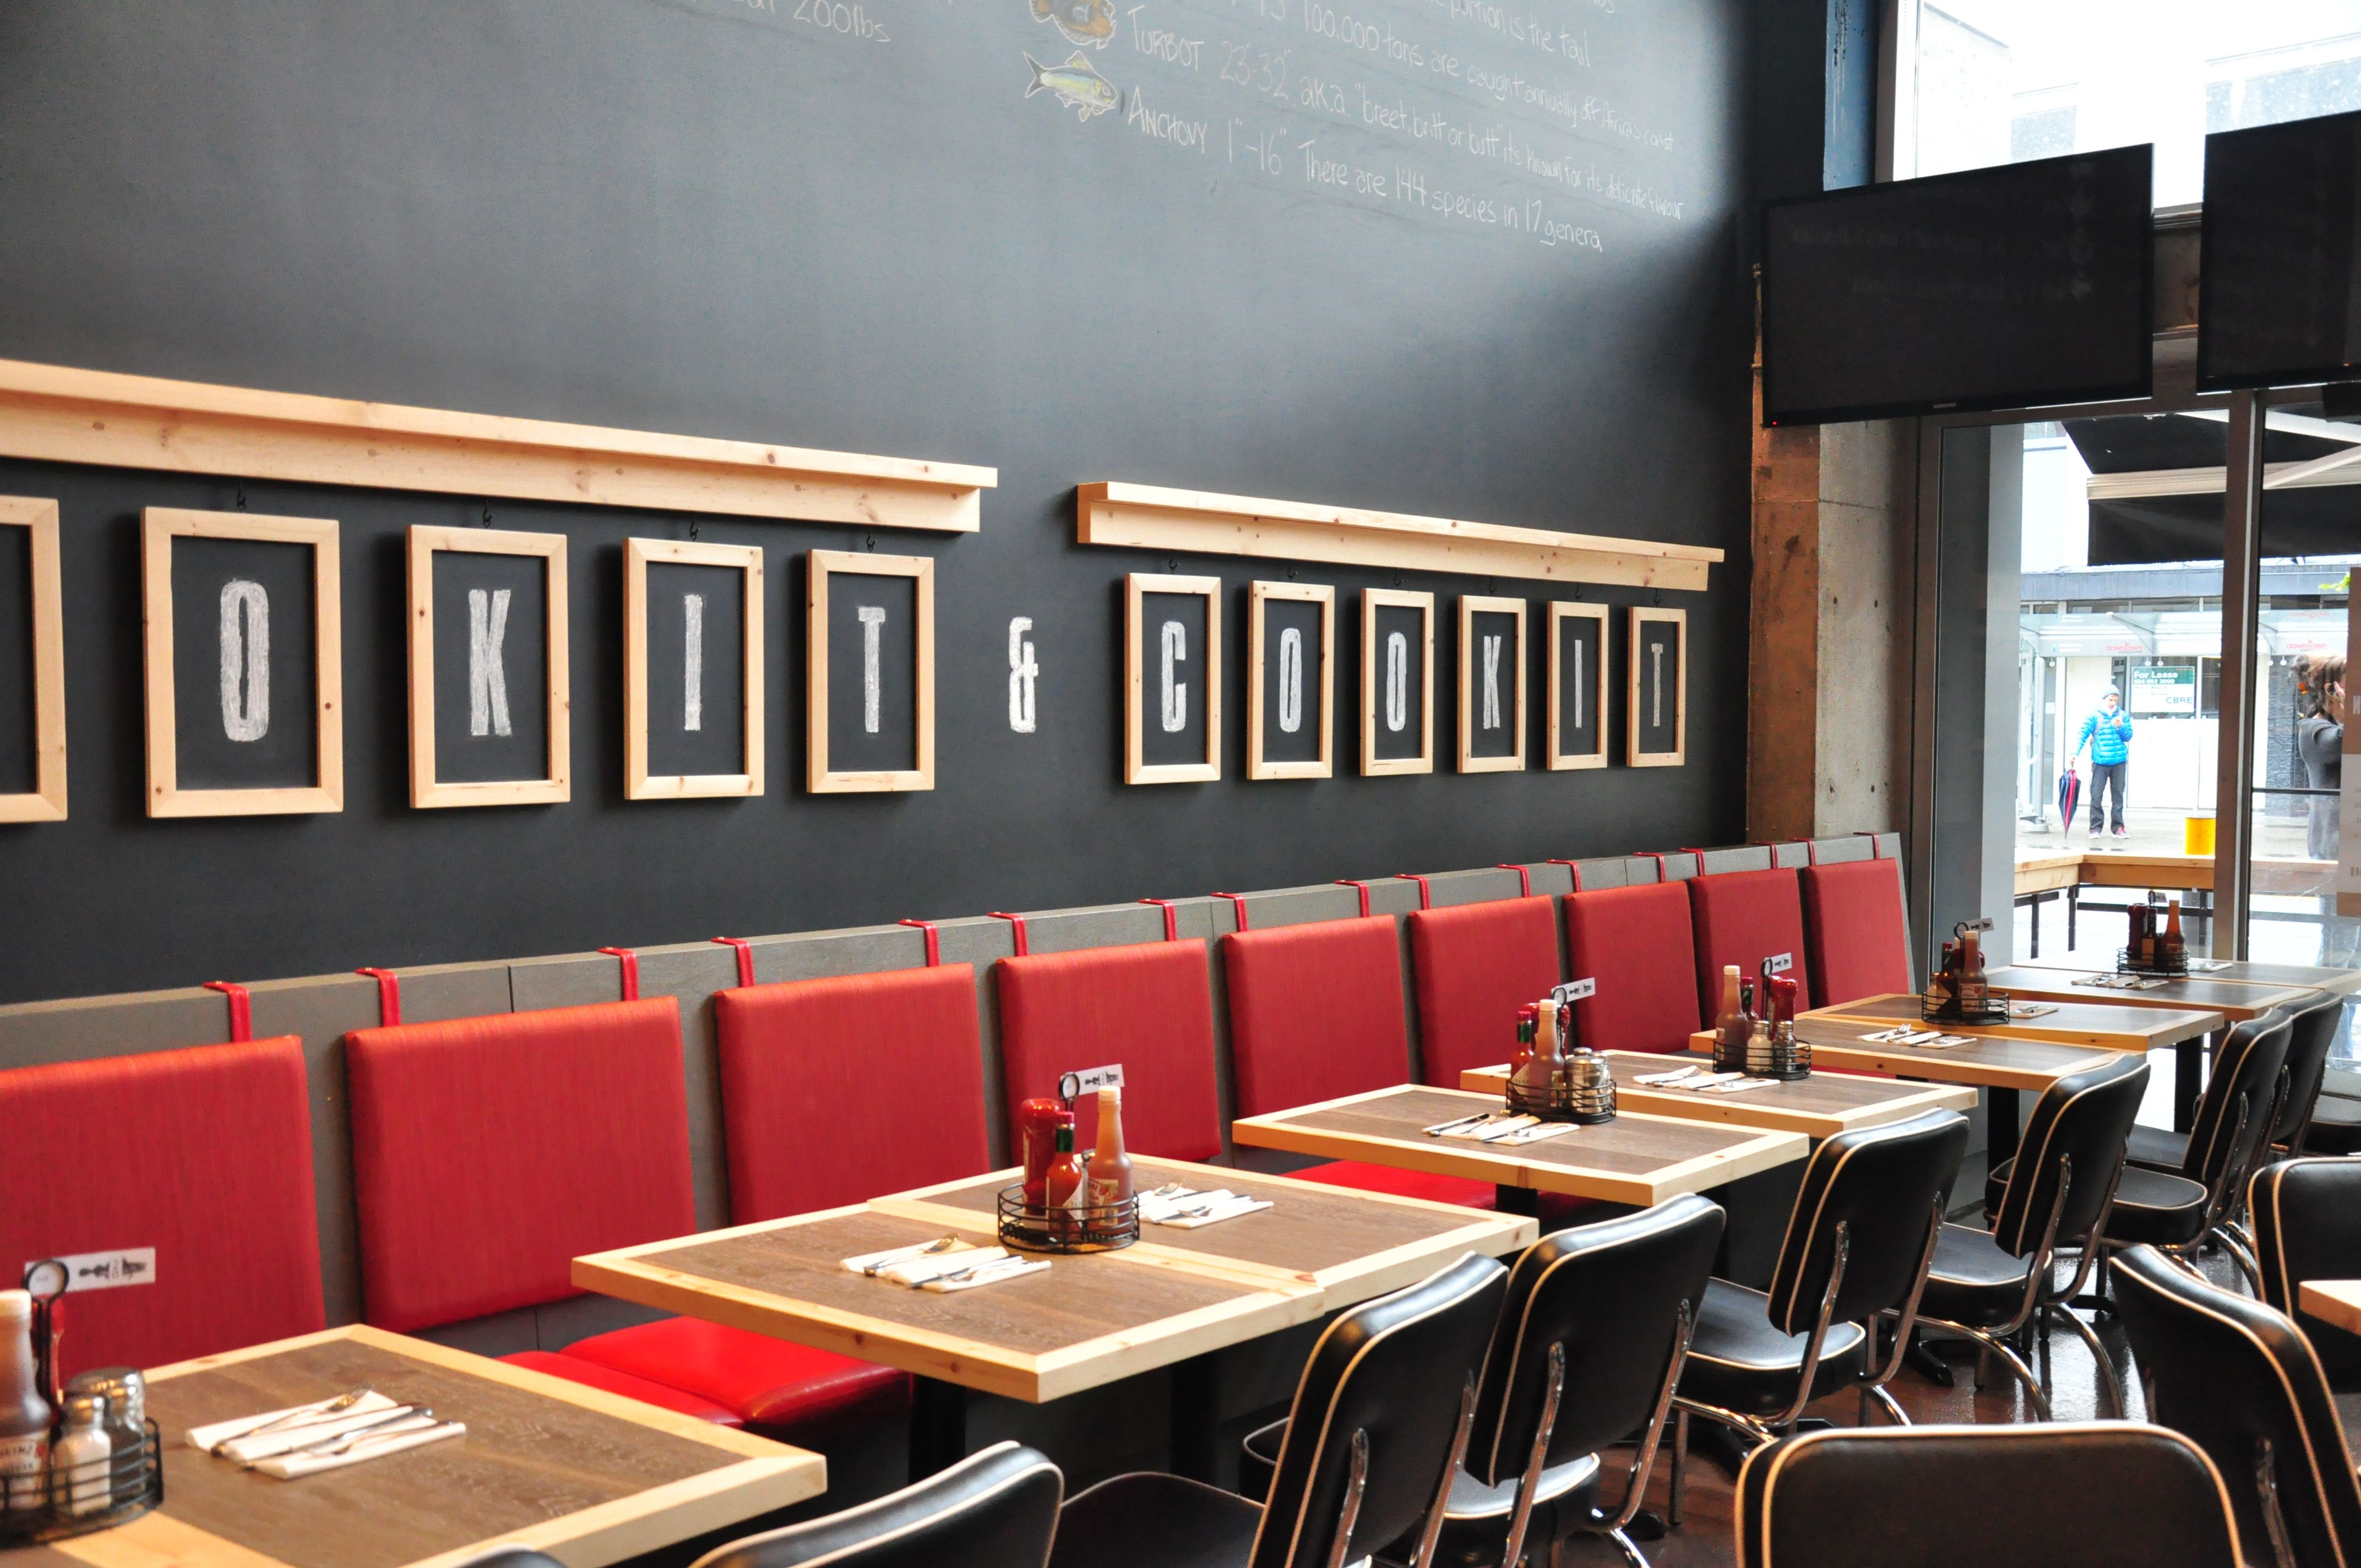 Fish Shack Seating With Images Restaurant Interior Design